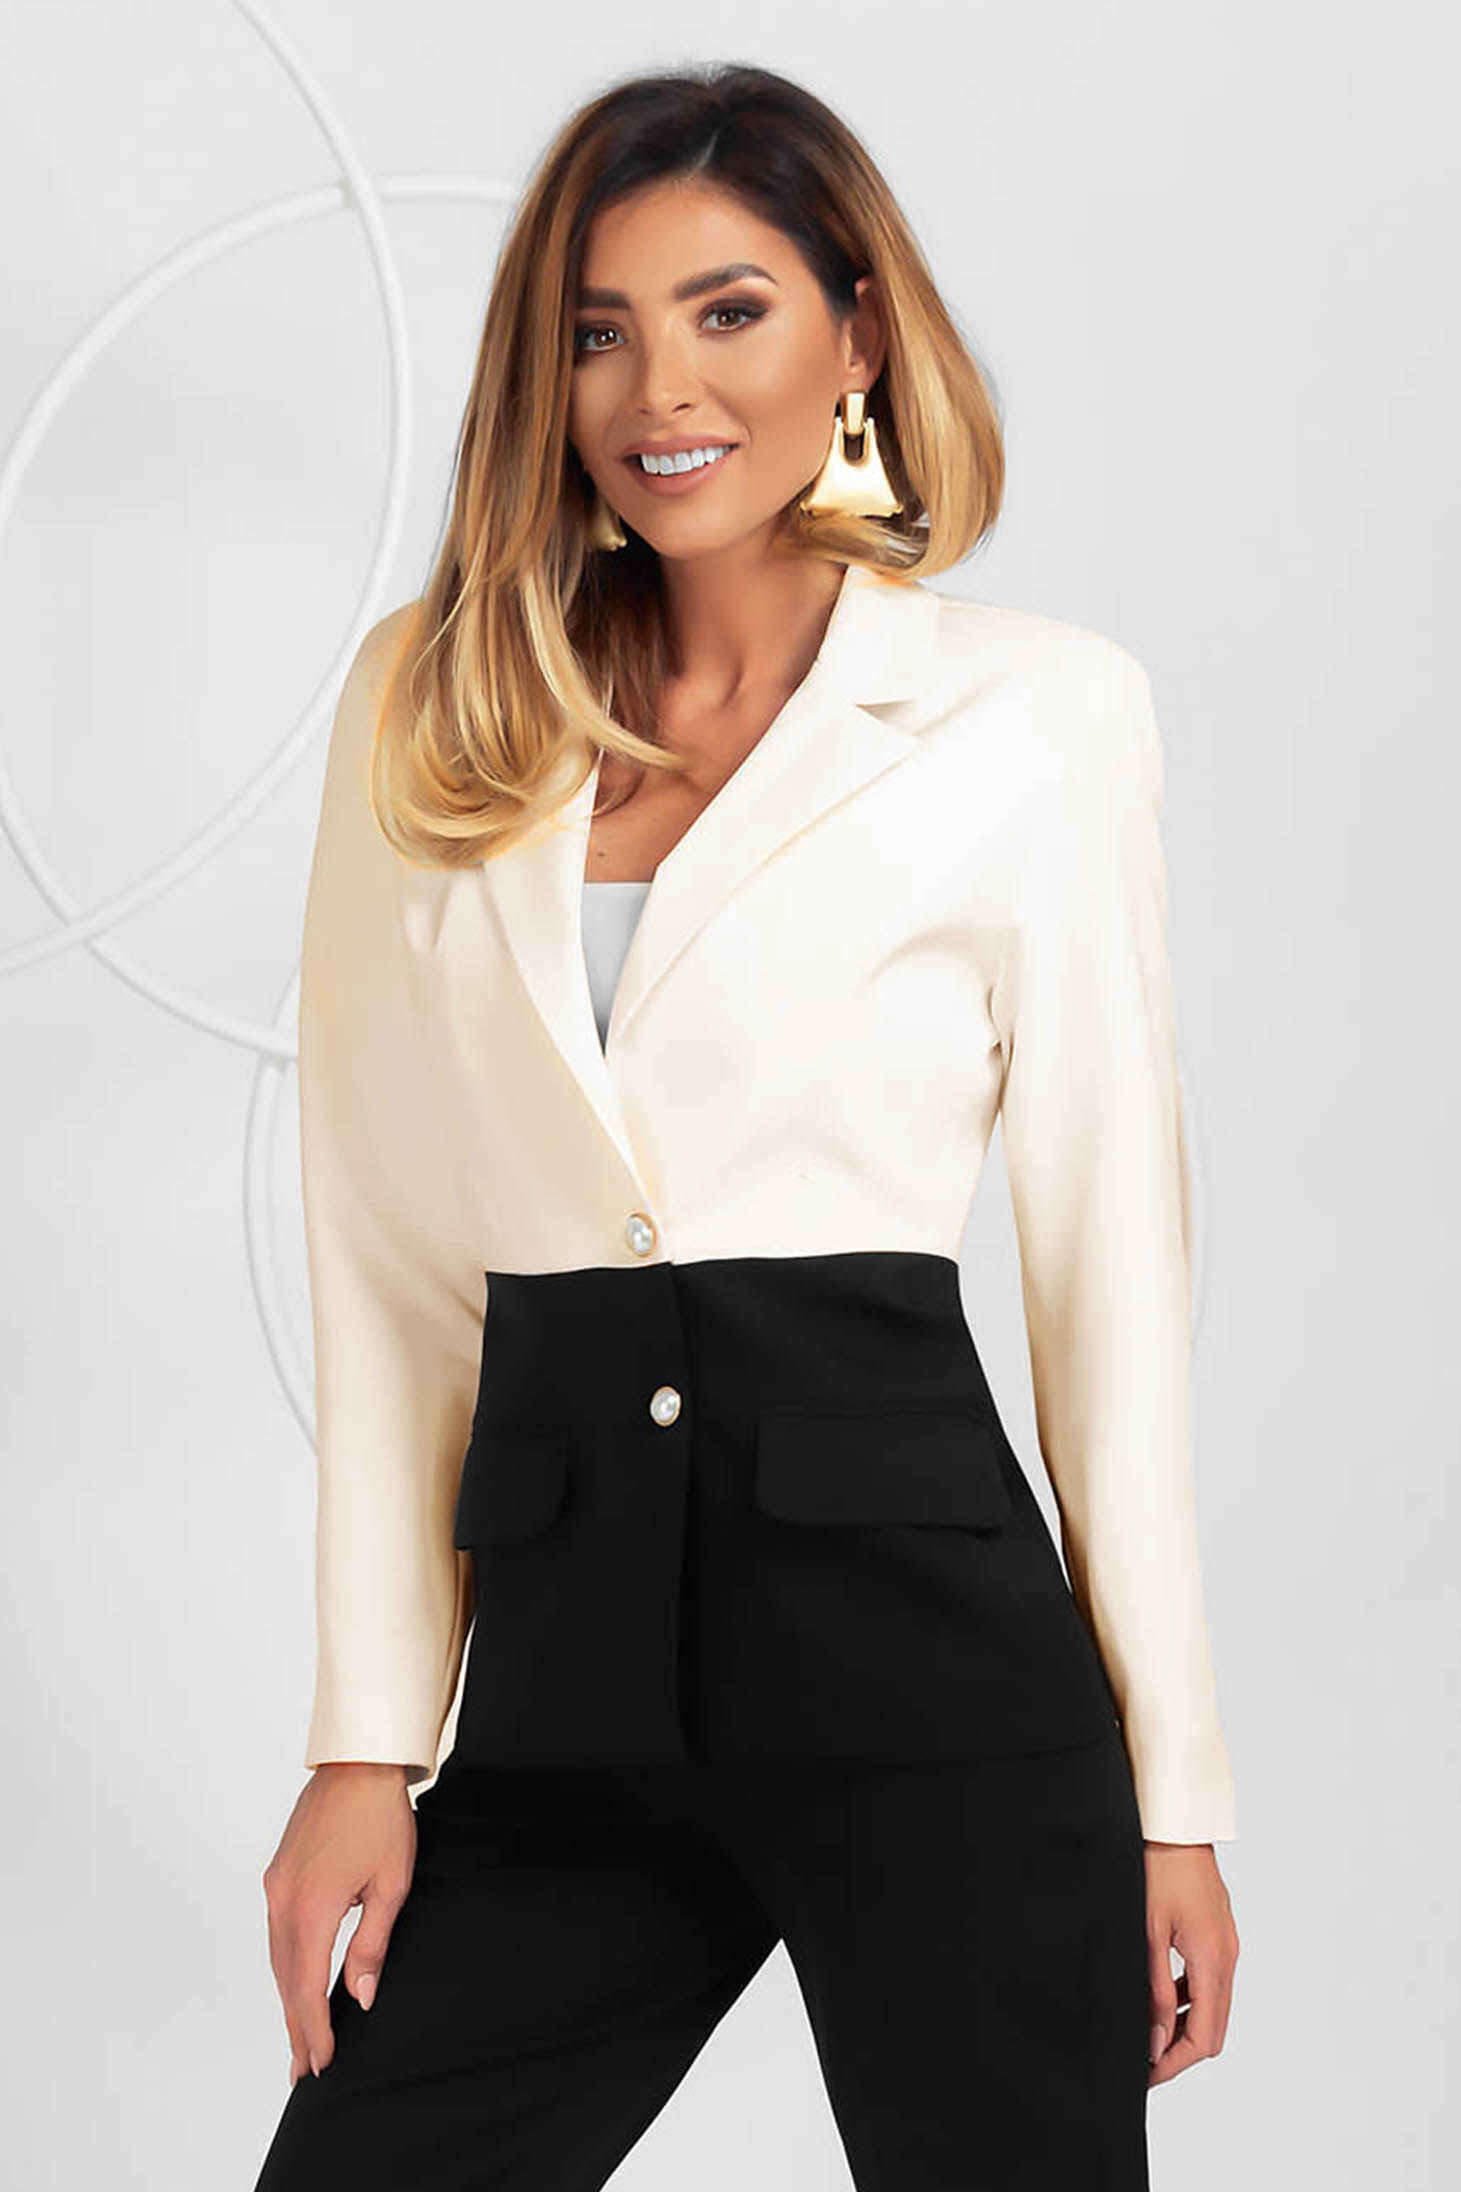 Jacket black office slightly elastic fabric with padded shoulders tented